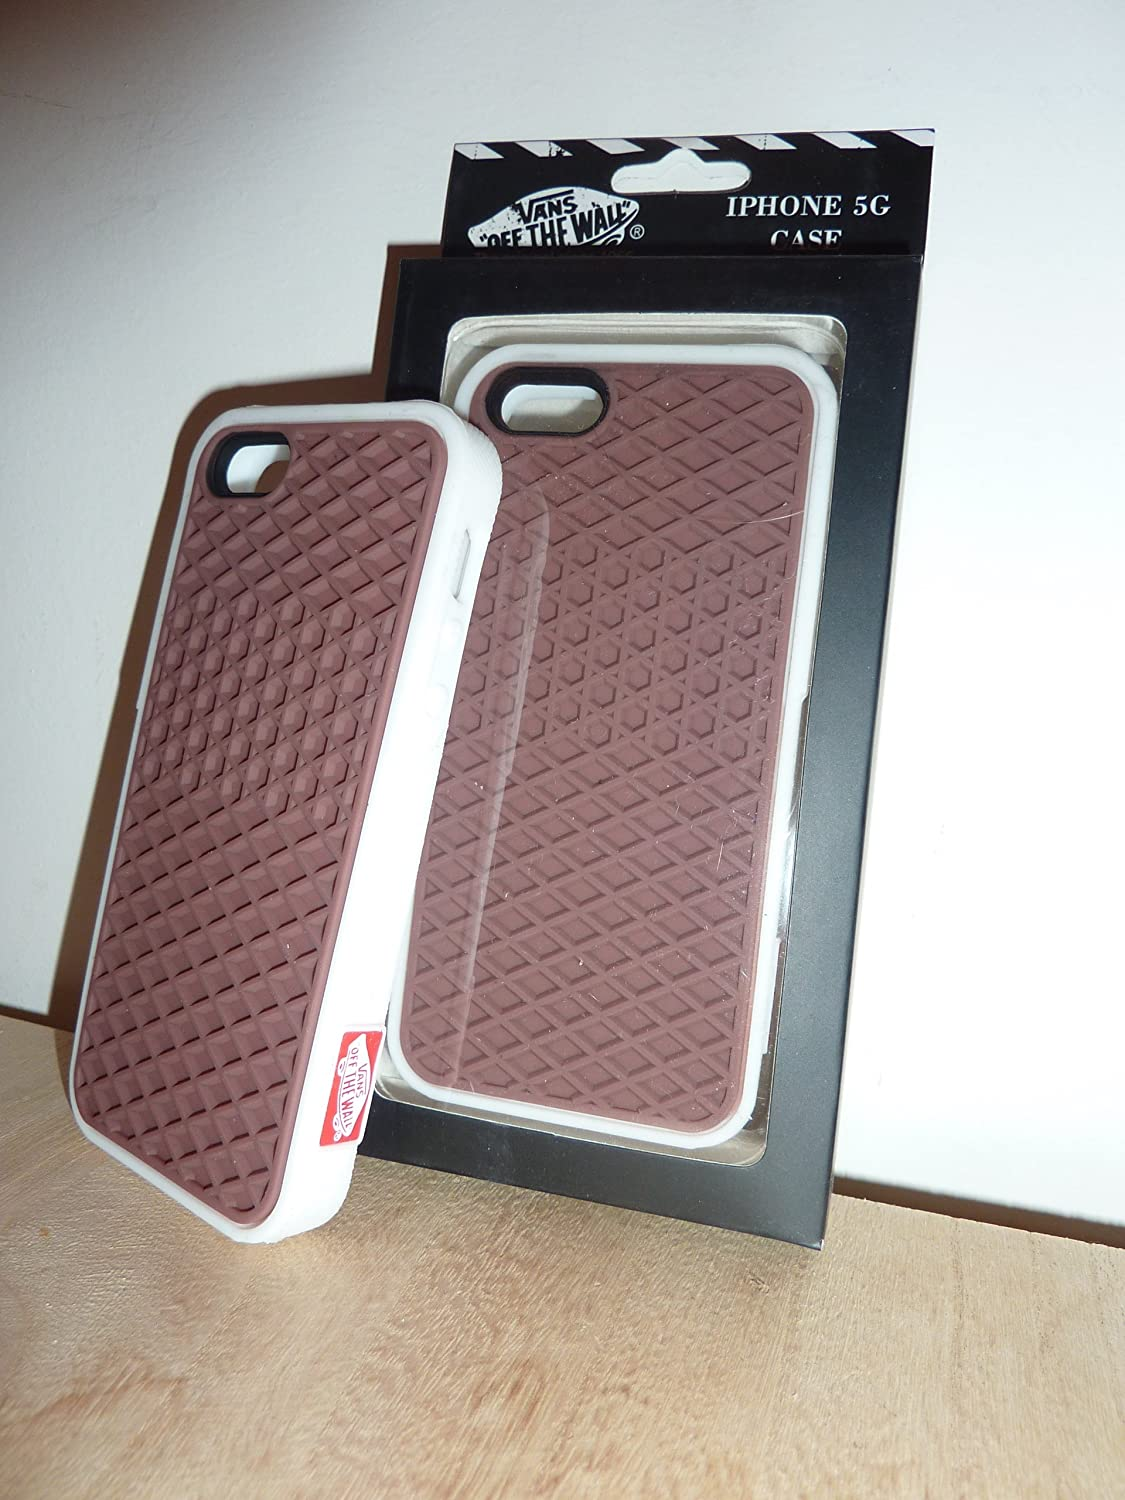 new style 15cb2 4341a Vans Iphone 5 waffle sole grip, case and cover in packaging